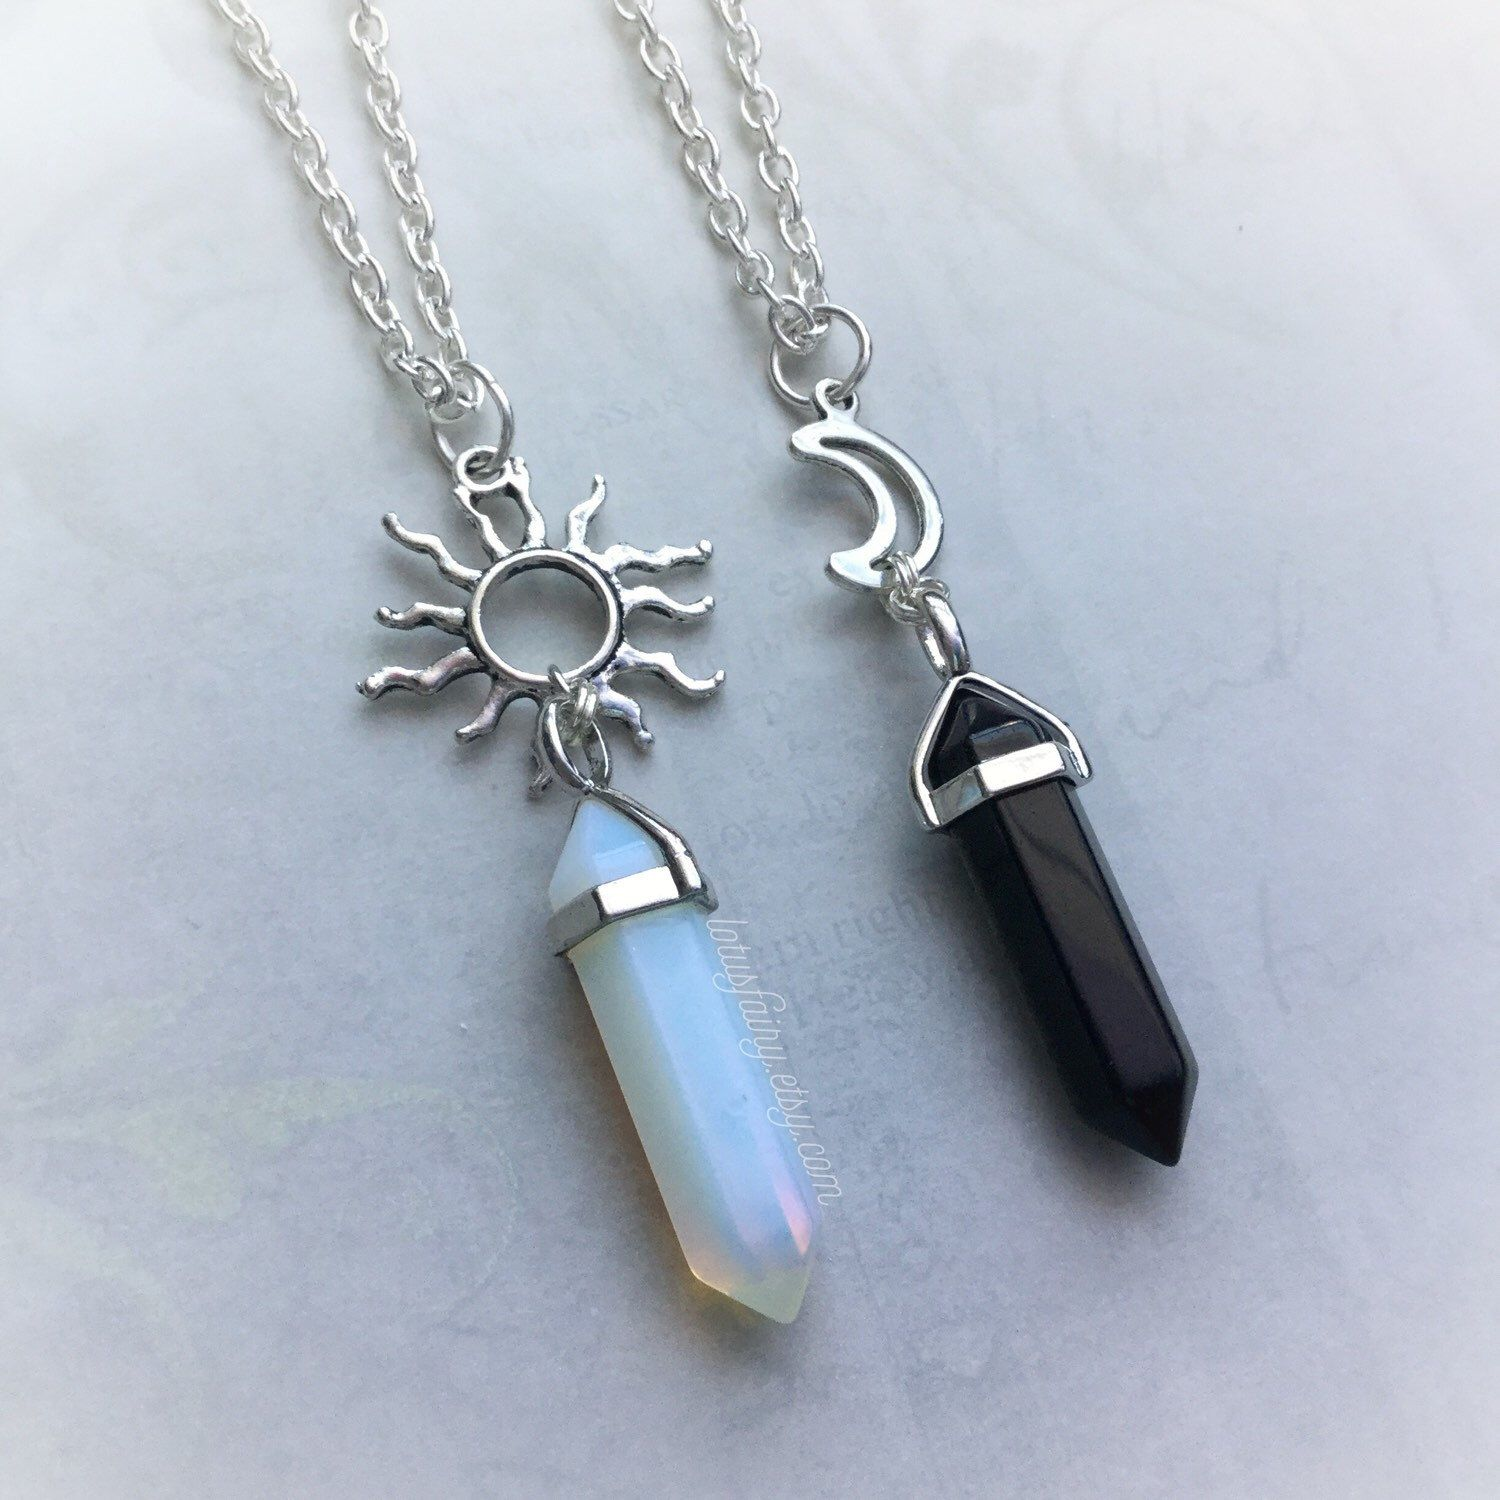 573186eef5 Best Friends Sun + Moon crystal necklaces | Fashion in 2019 | Friend ...